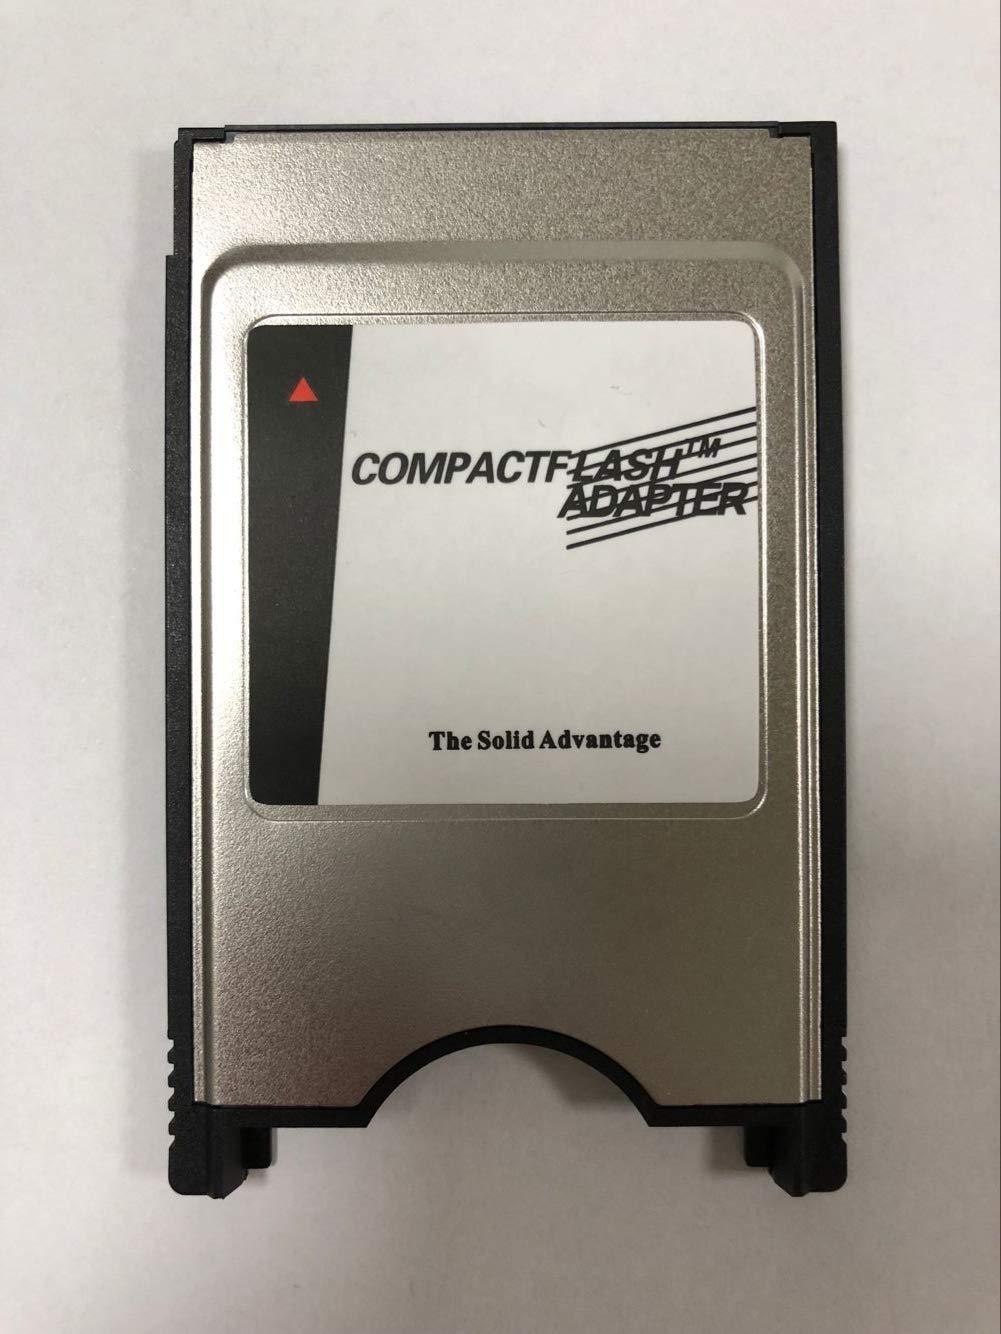 BOOXIN PC Card Adapter notebook PC Laptop PCMCIA